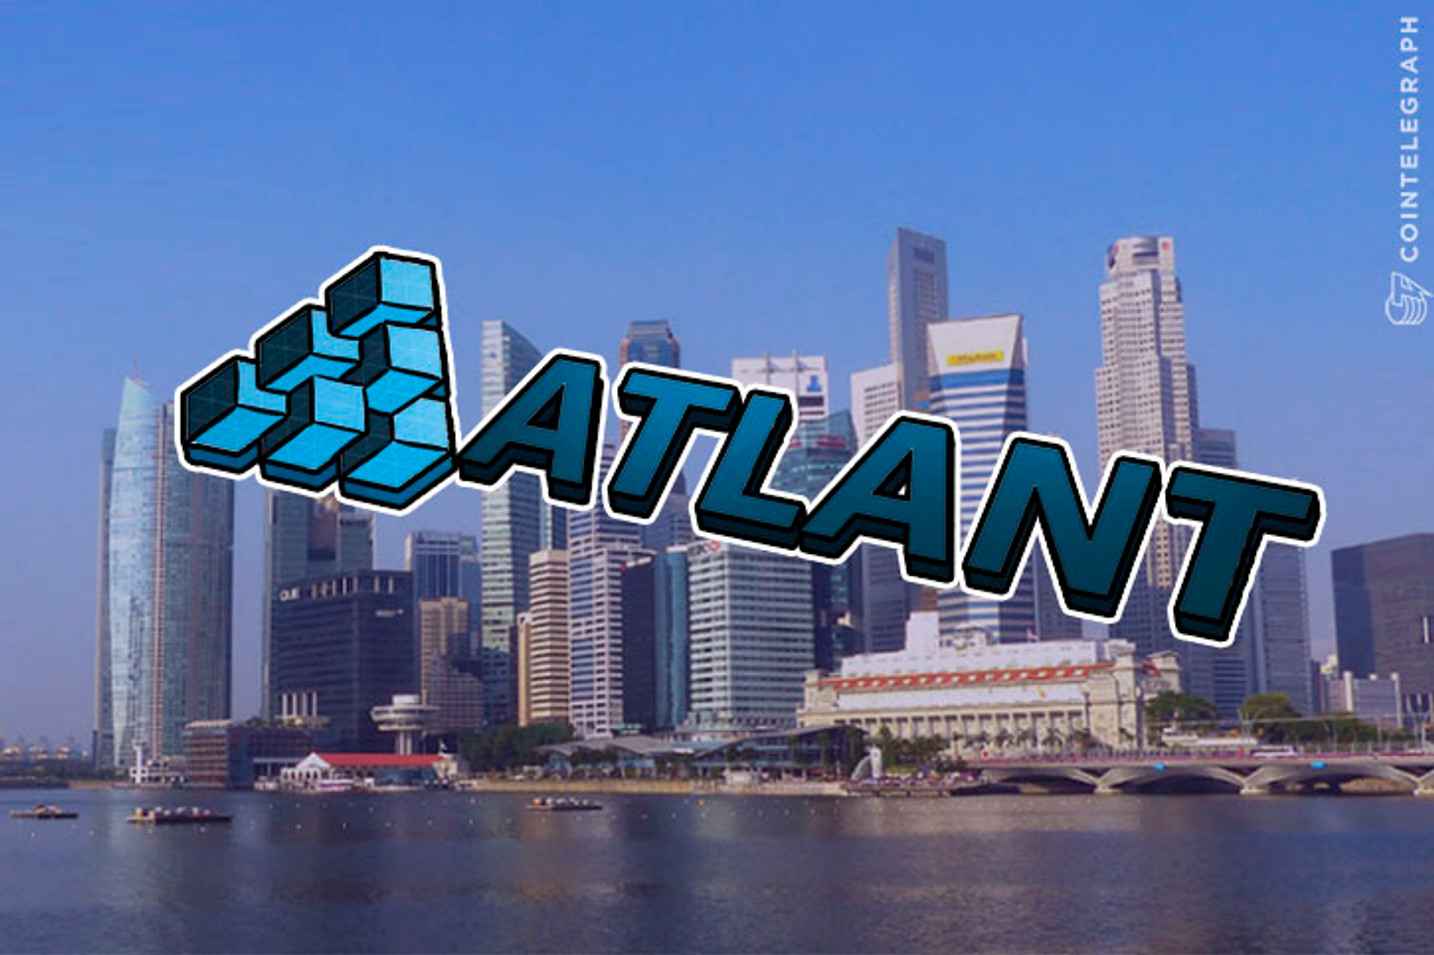 ATLANT Ending ICO Pre-Sale on August 19 — Funding Goals Achieved, Focus Turns to ICO Launch on September 7